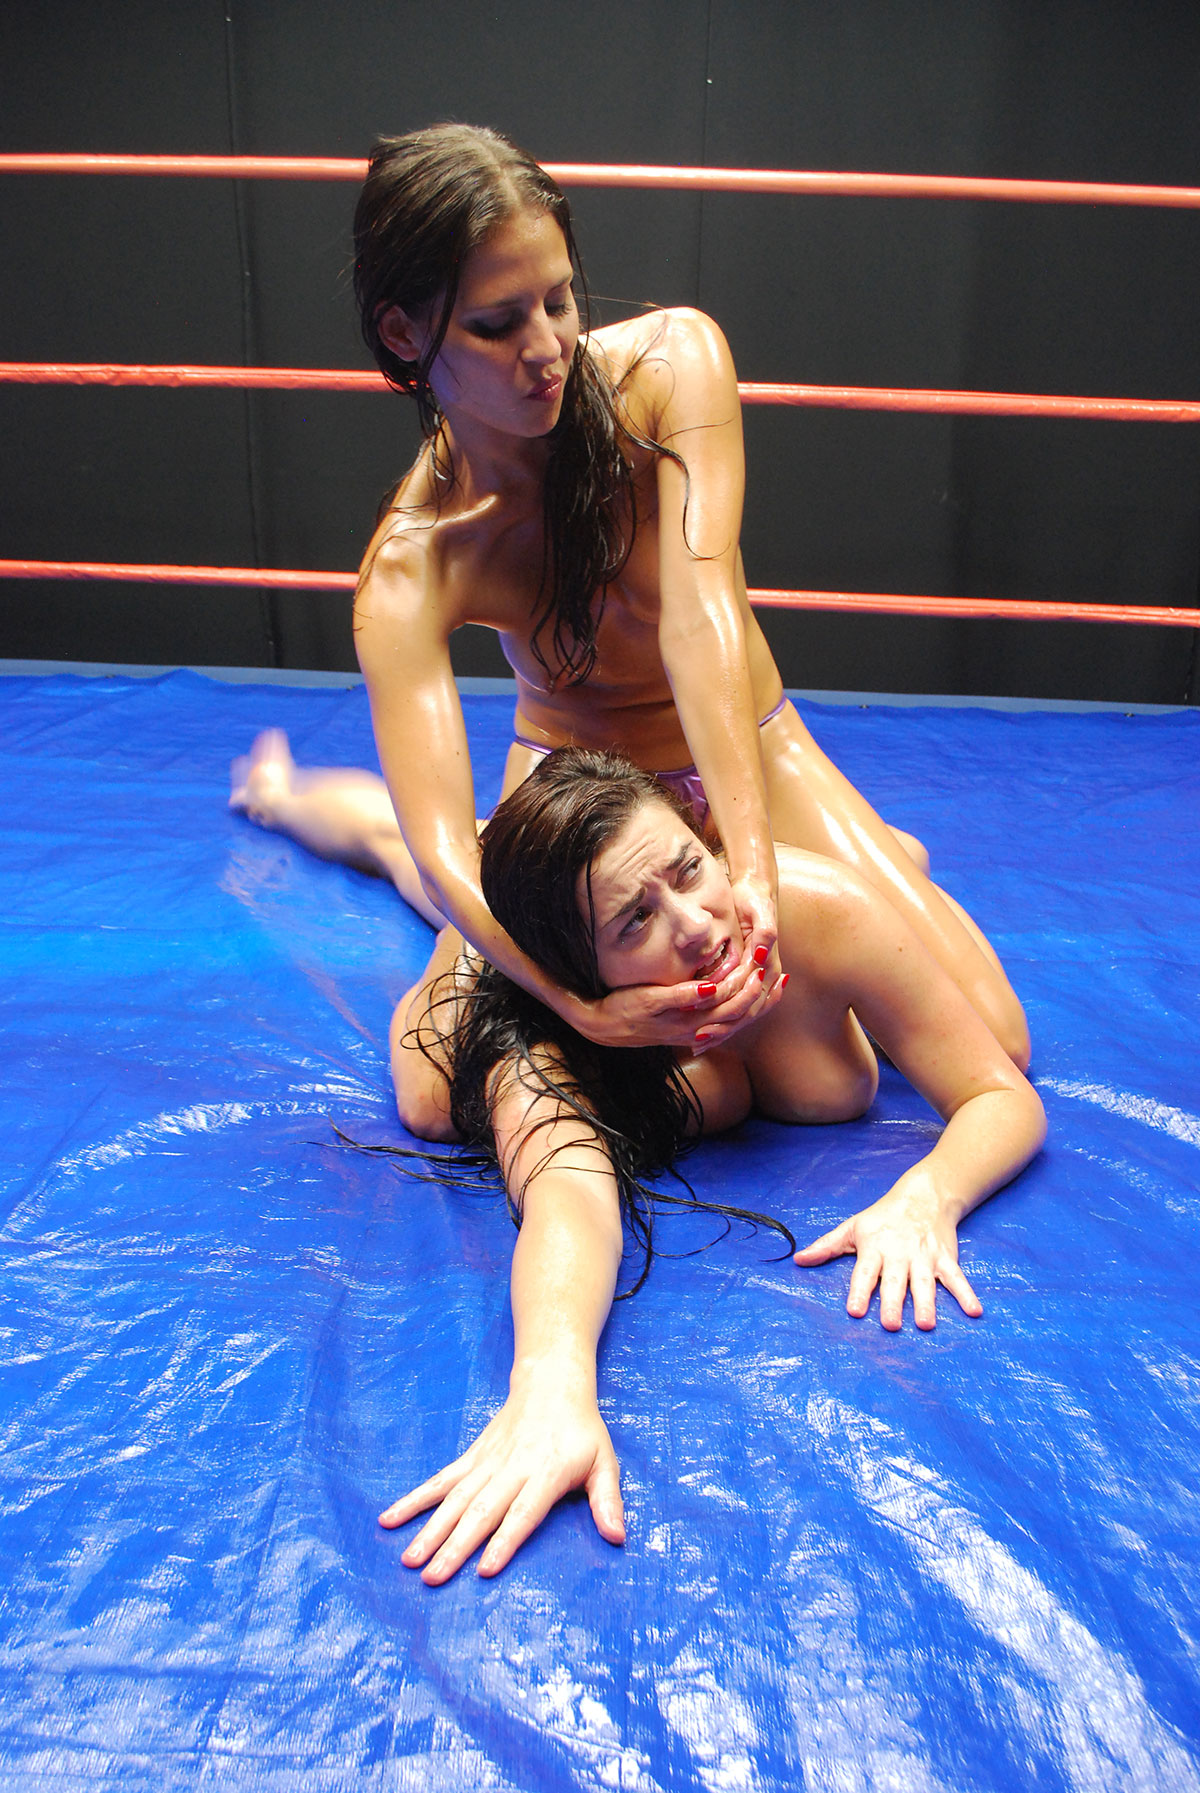 Dt Match Topless Oil Wrestling Featuring Cali Logan